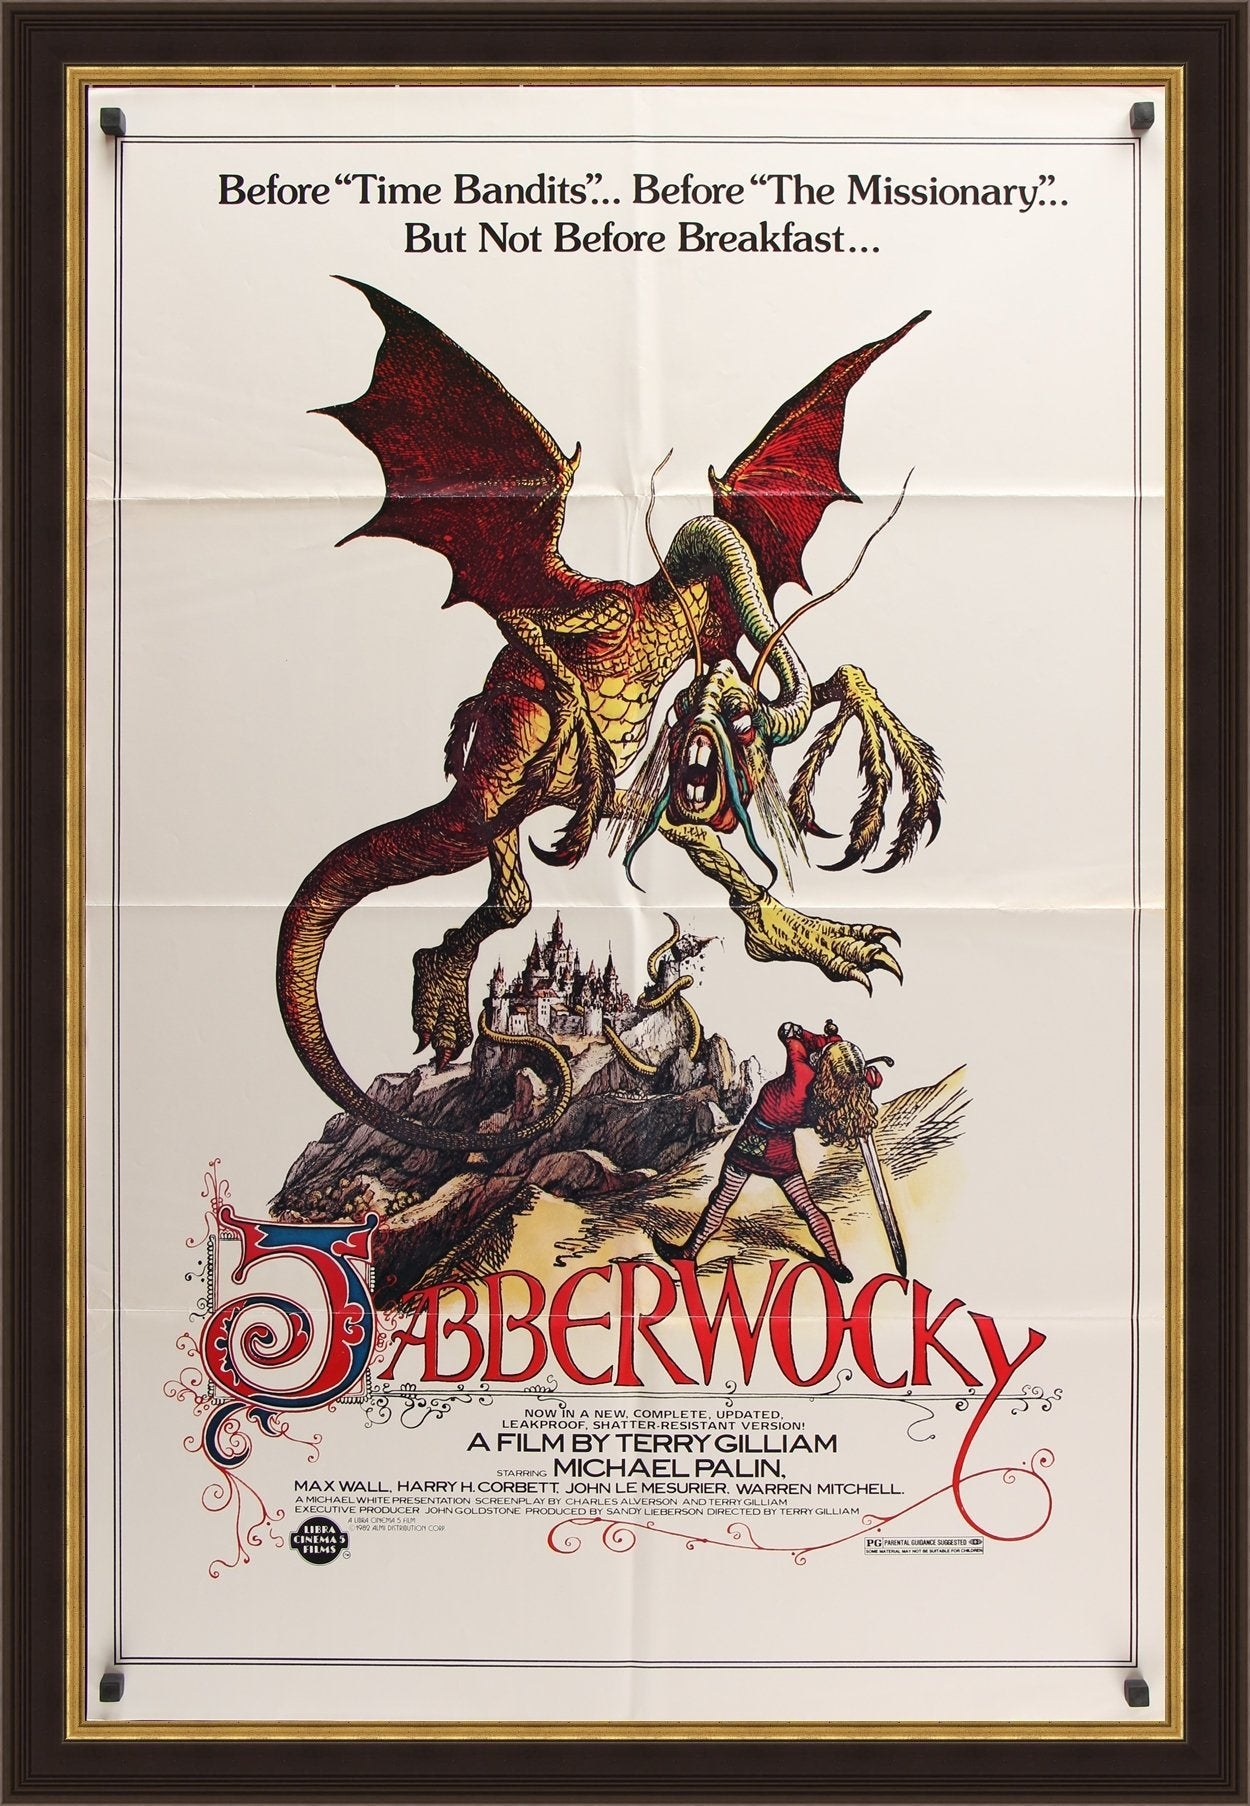 An original movie poster for the Terry Gilliam film Jabberwocky